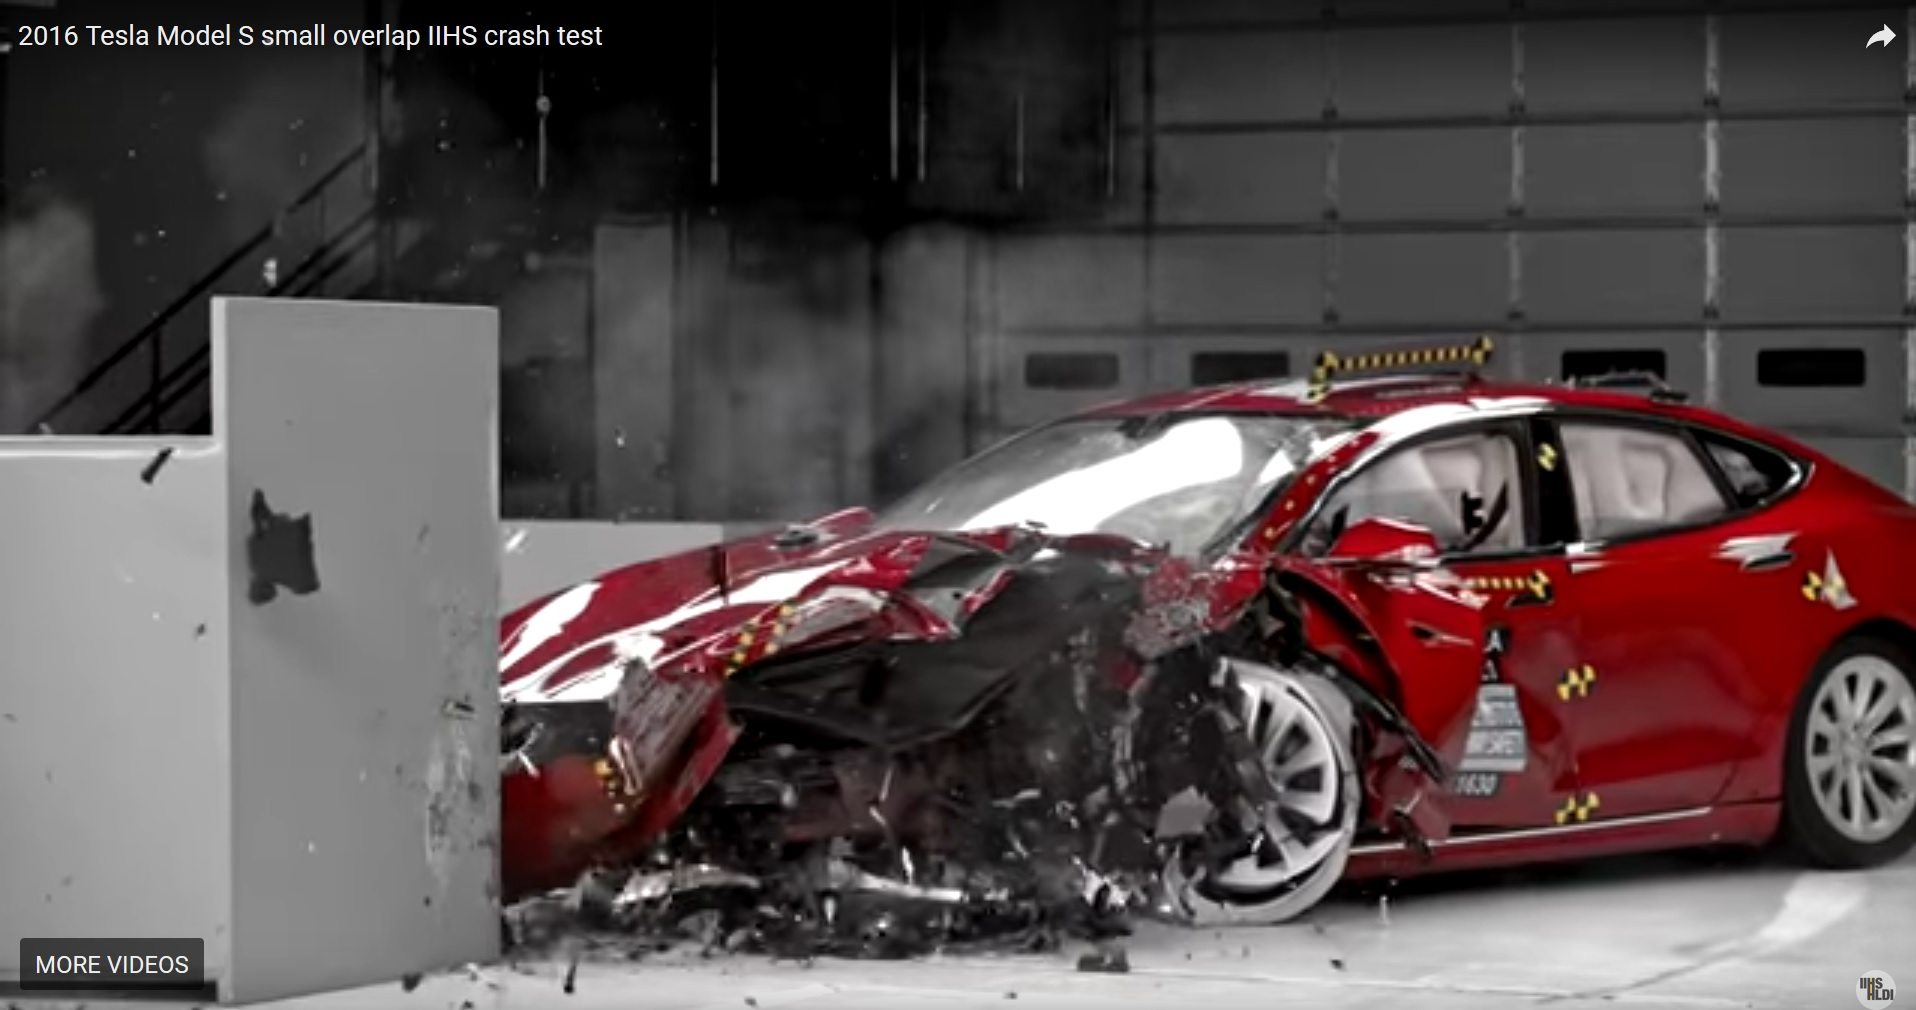 Tesla Slams Iihs After Acceptable Model S Test Older